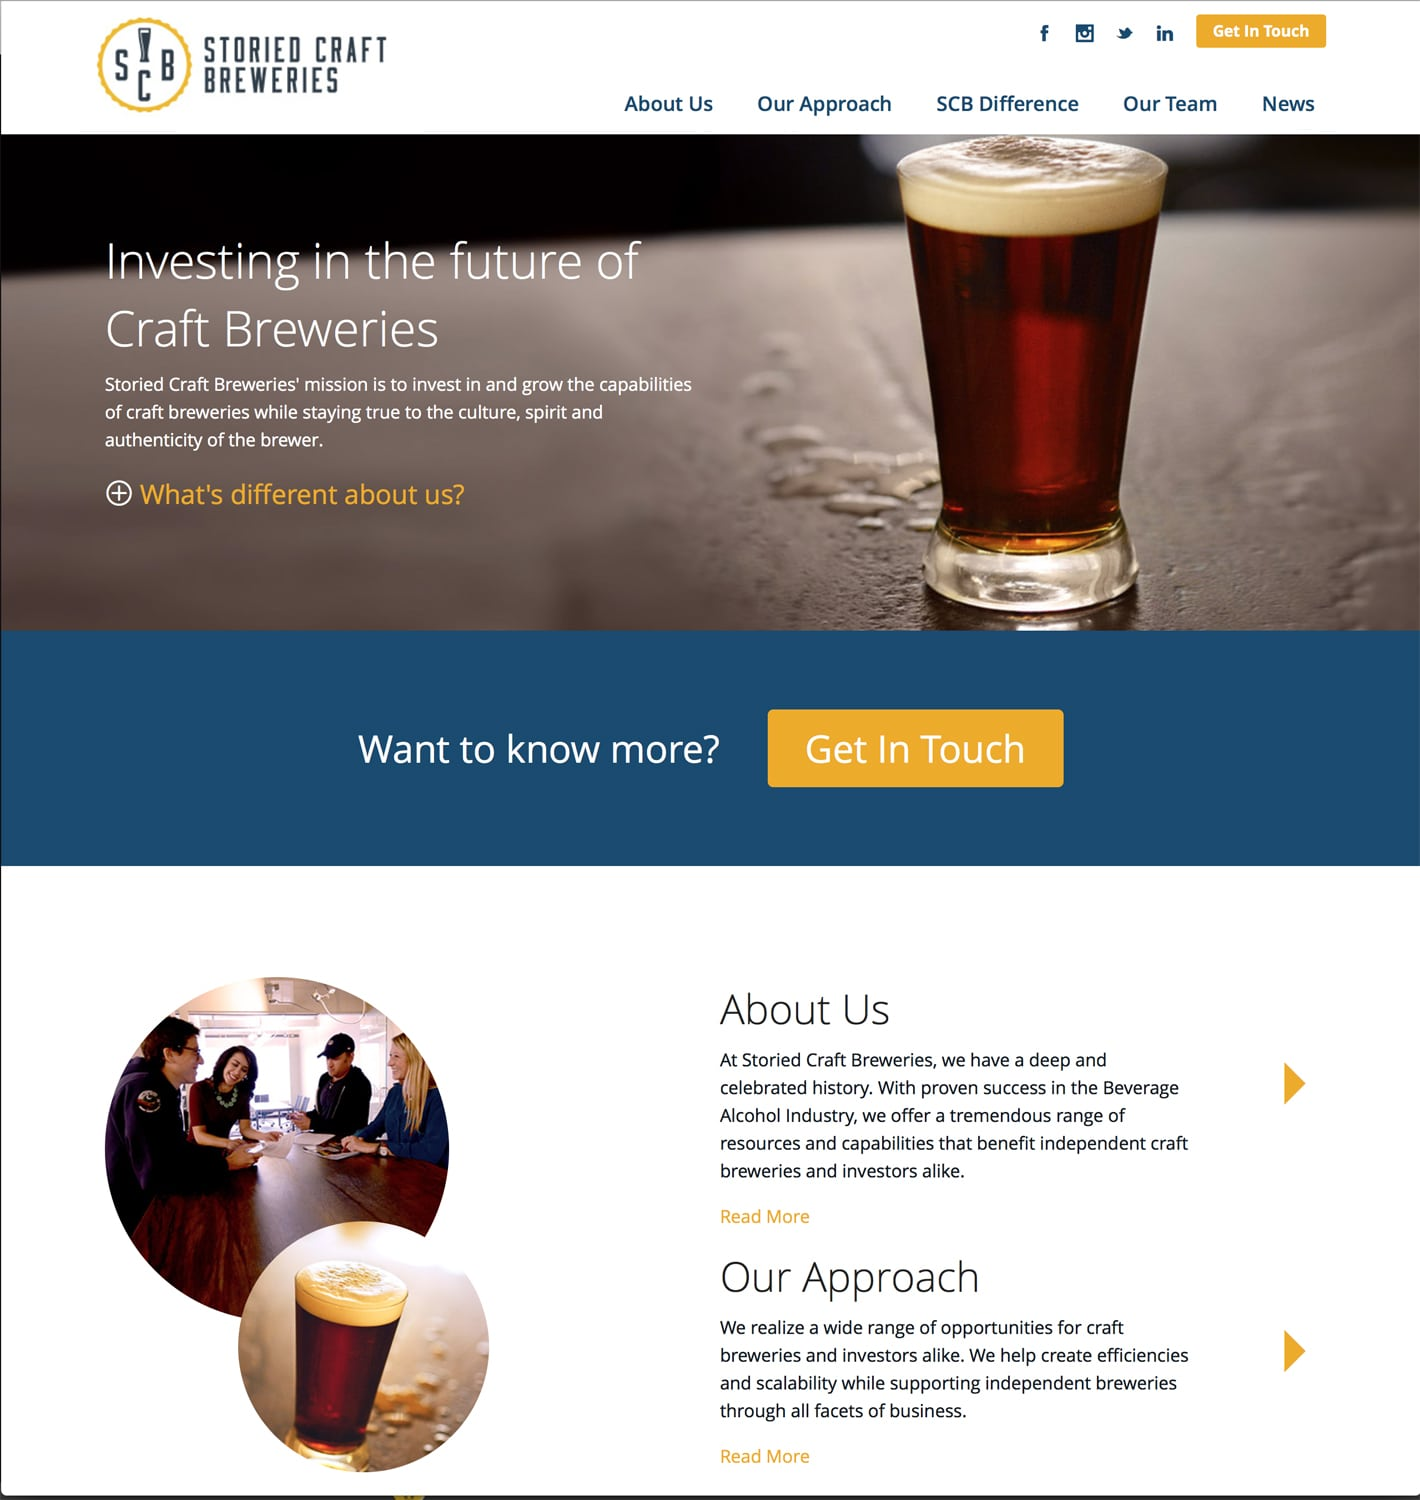 Storied Craft Breweries Want to Know More web page featuring a beer glass photo with beer and a nice head on stone formica background and some beer splashed. Inset photo below with young workers in discussion around a table. Branding Photography